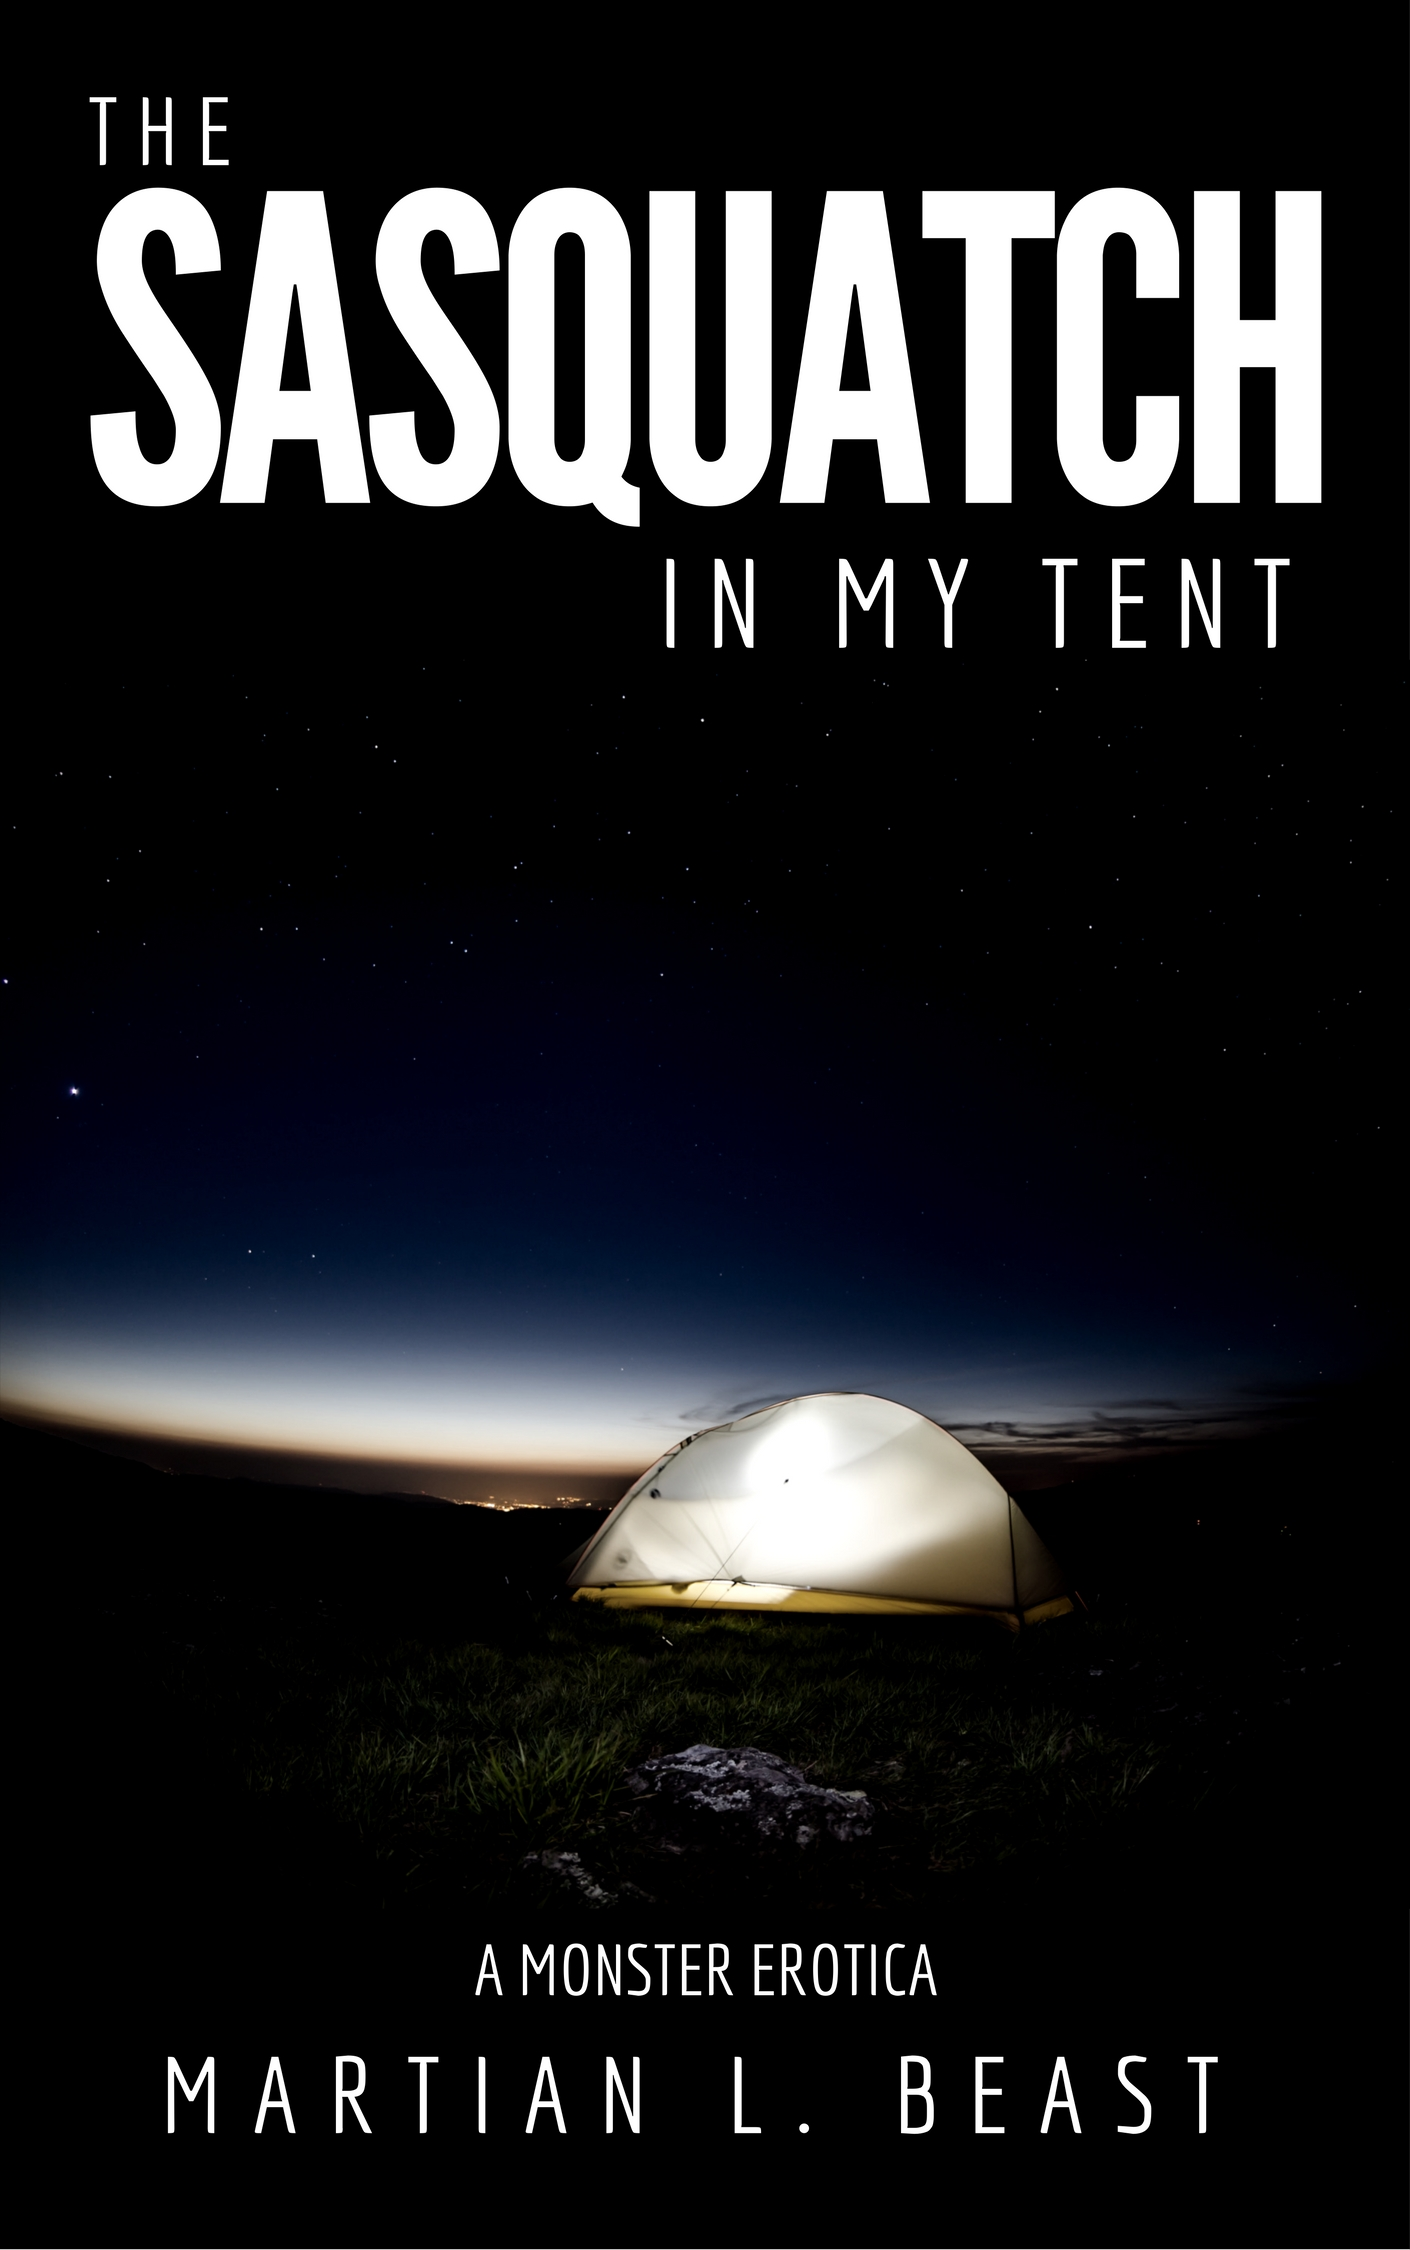 The sasquatch in my tent - a monster erotica